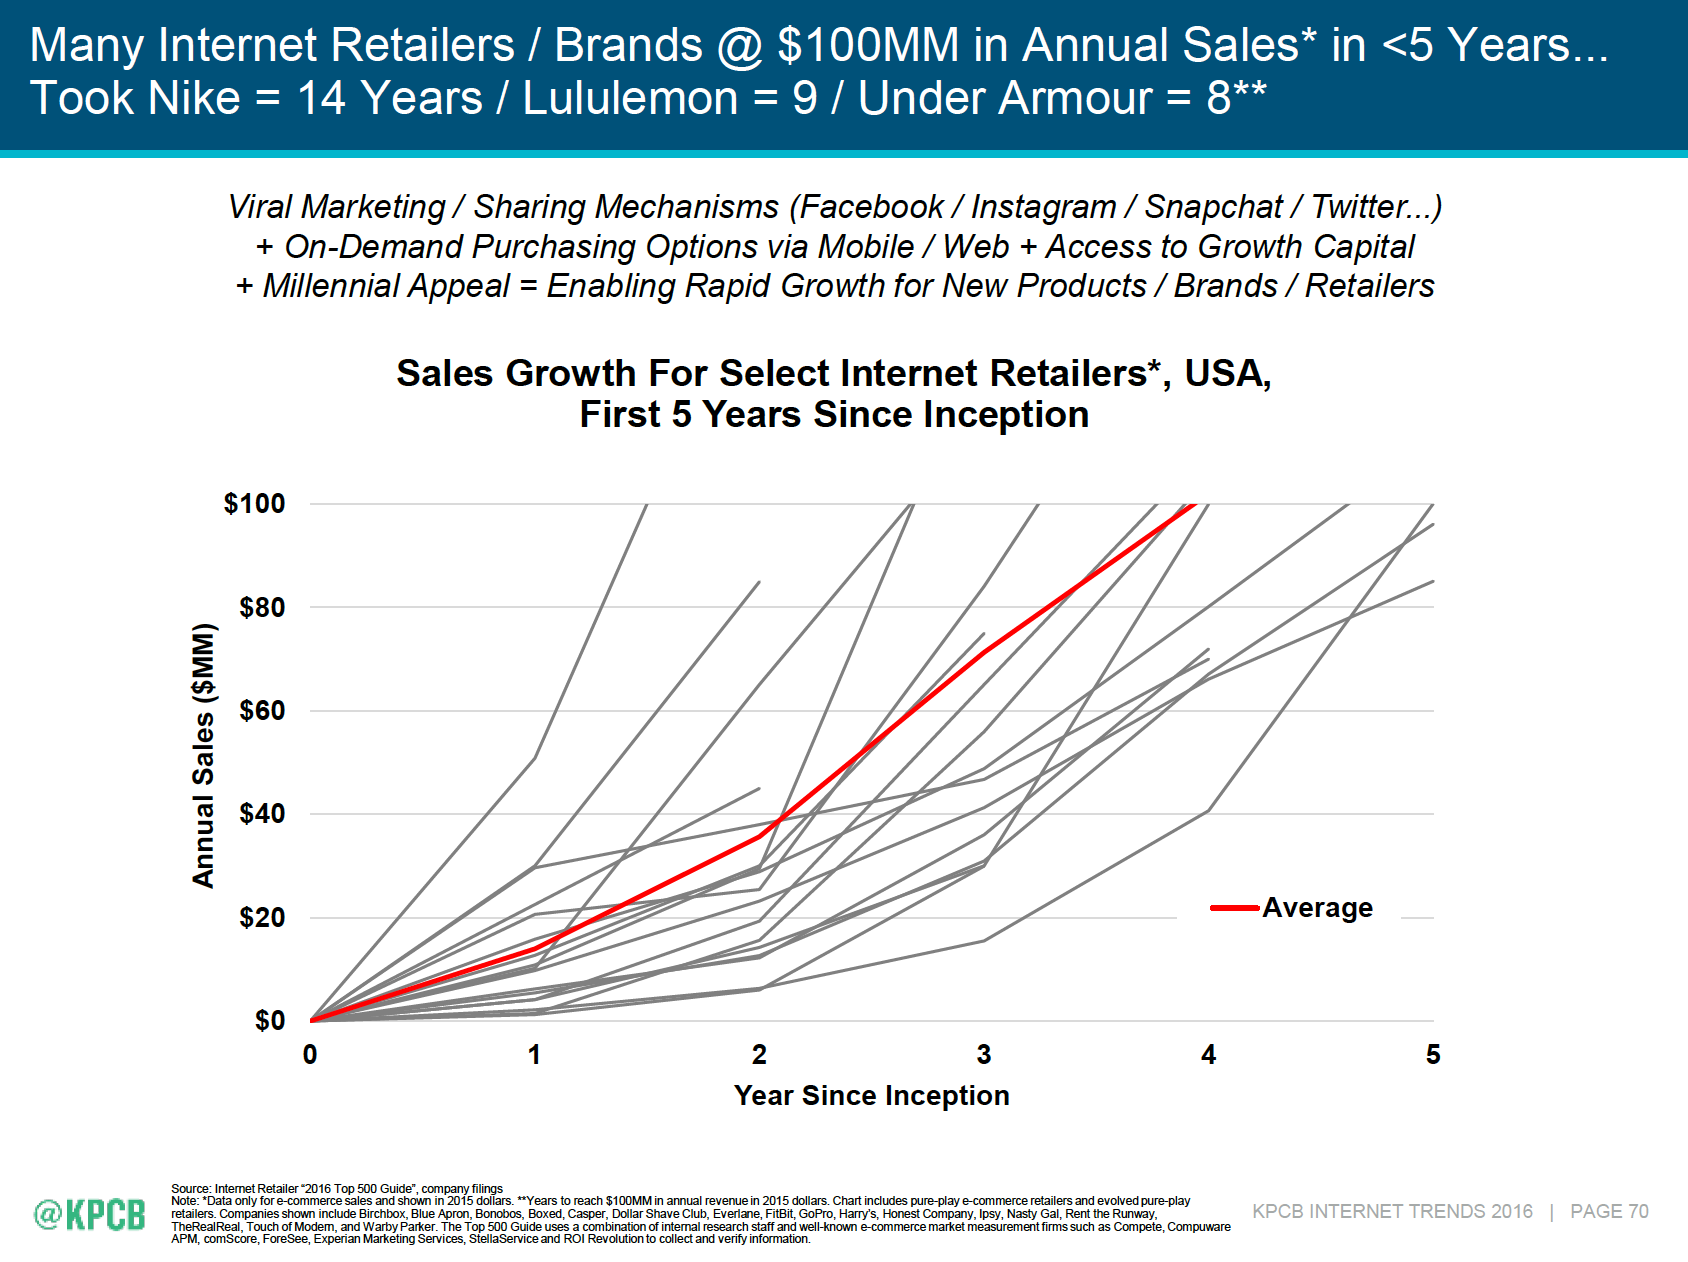 Upstarts are growing faster than ever before. - Mary Meeker's 2016 Internet Trends Report